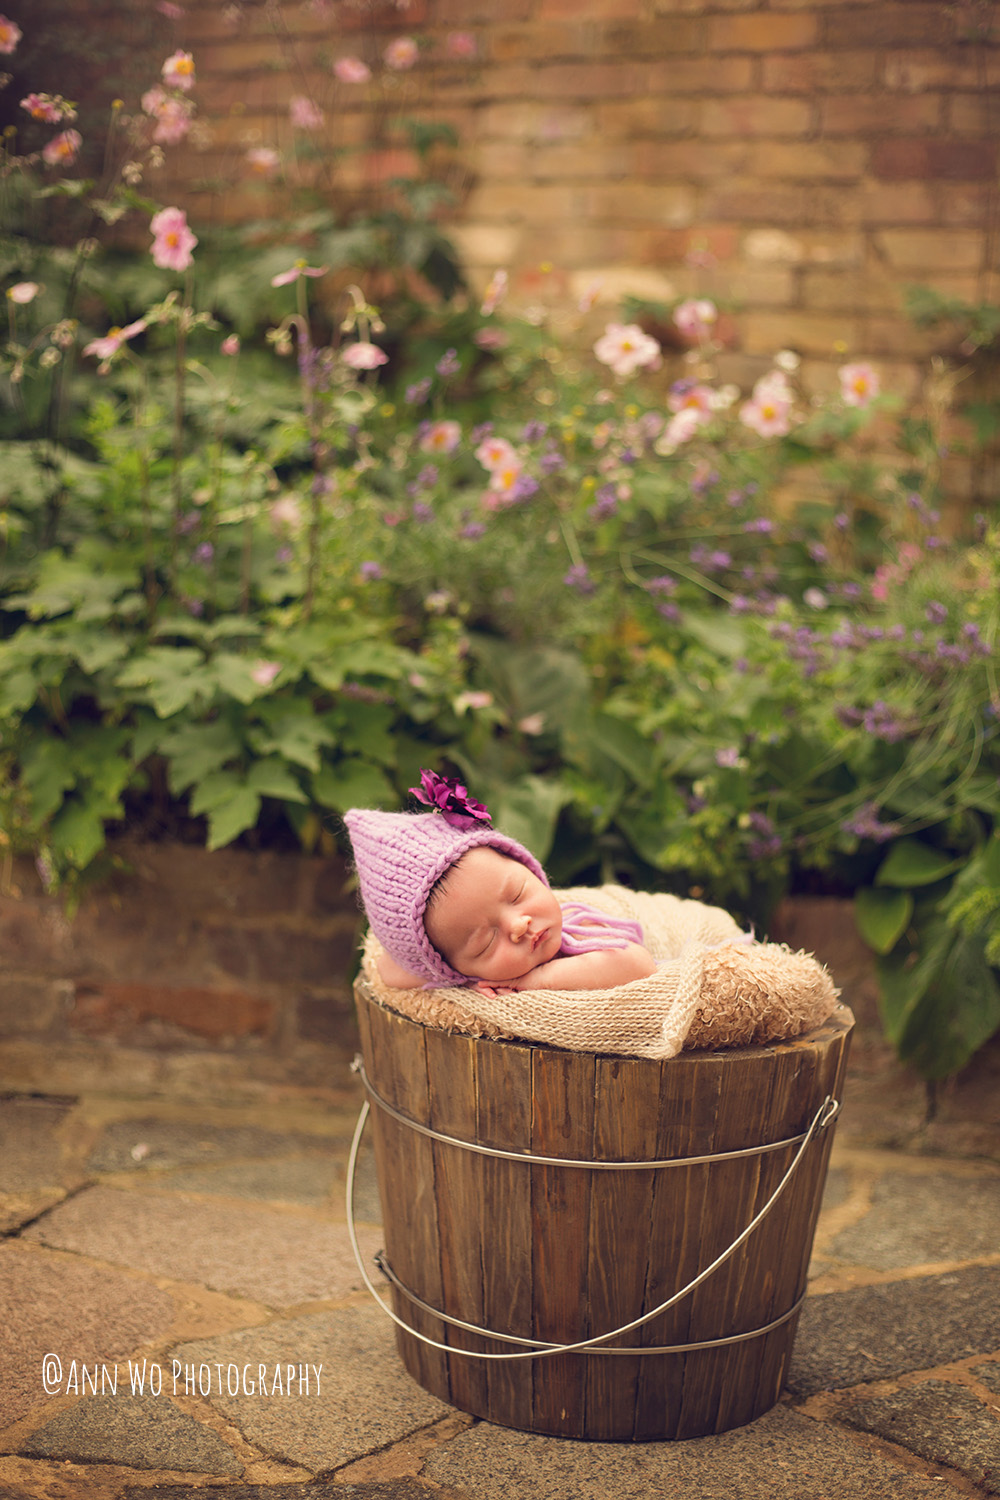 baby-photographer-london-newborn-girl-in-bucket-outdoor-uk.jpg